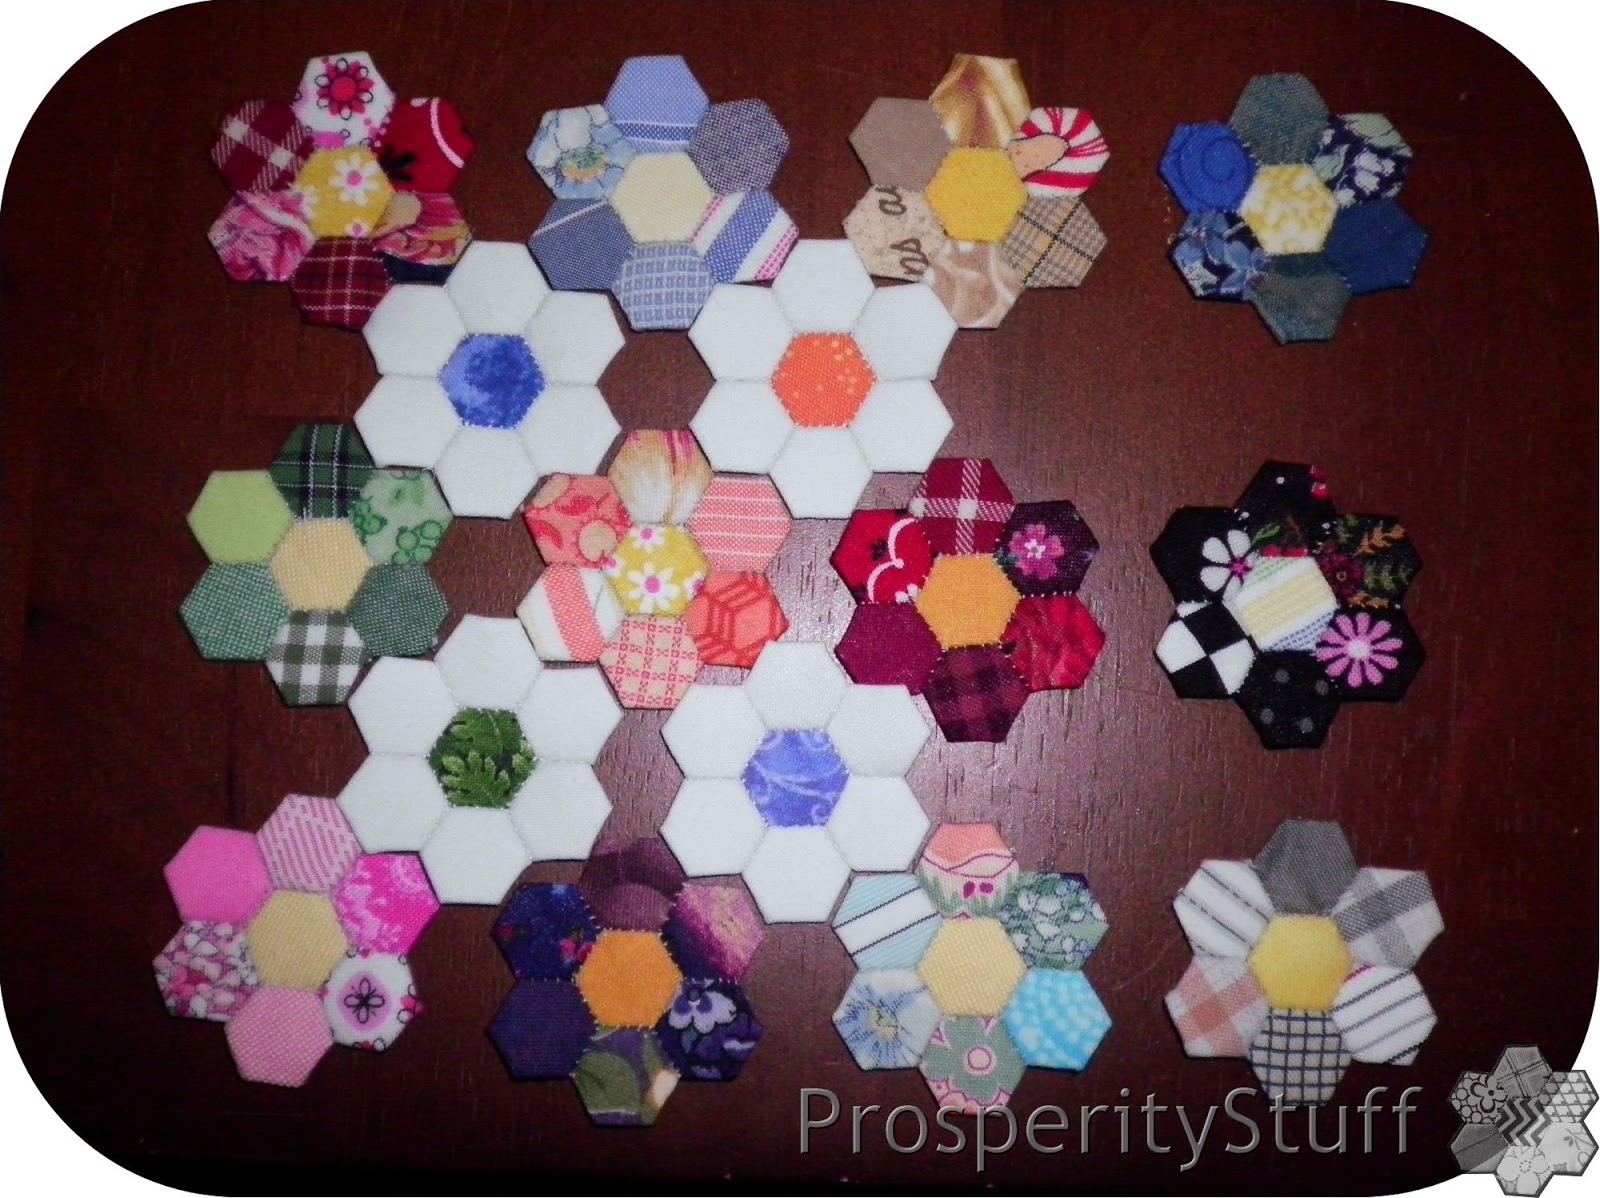 Prosperitystuff Quilts English Paper Piecing